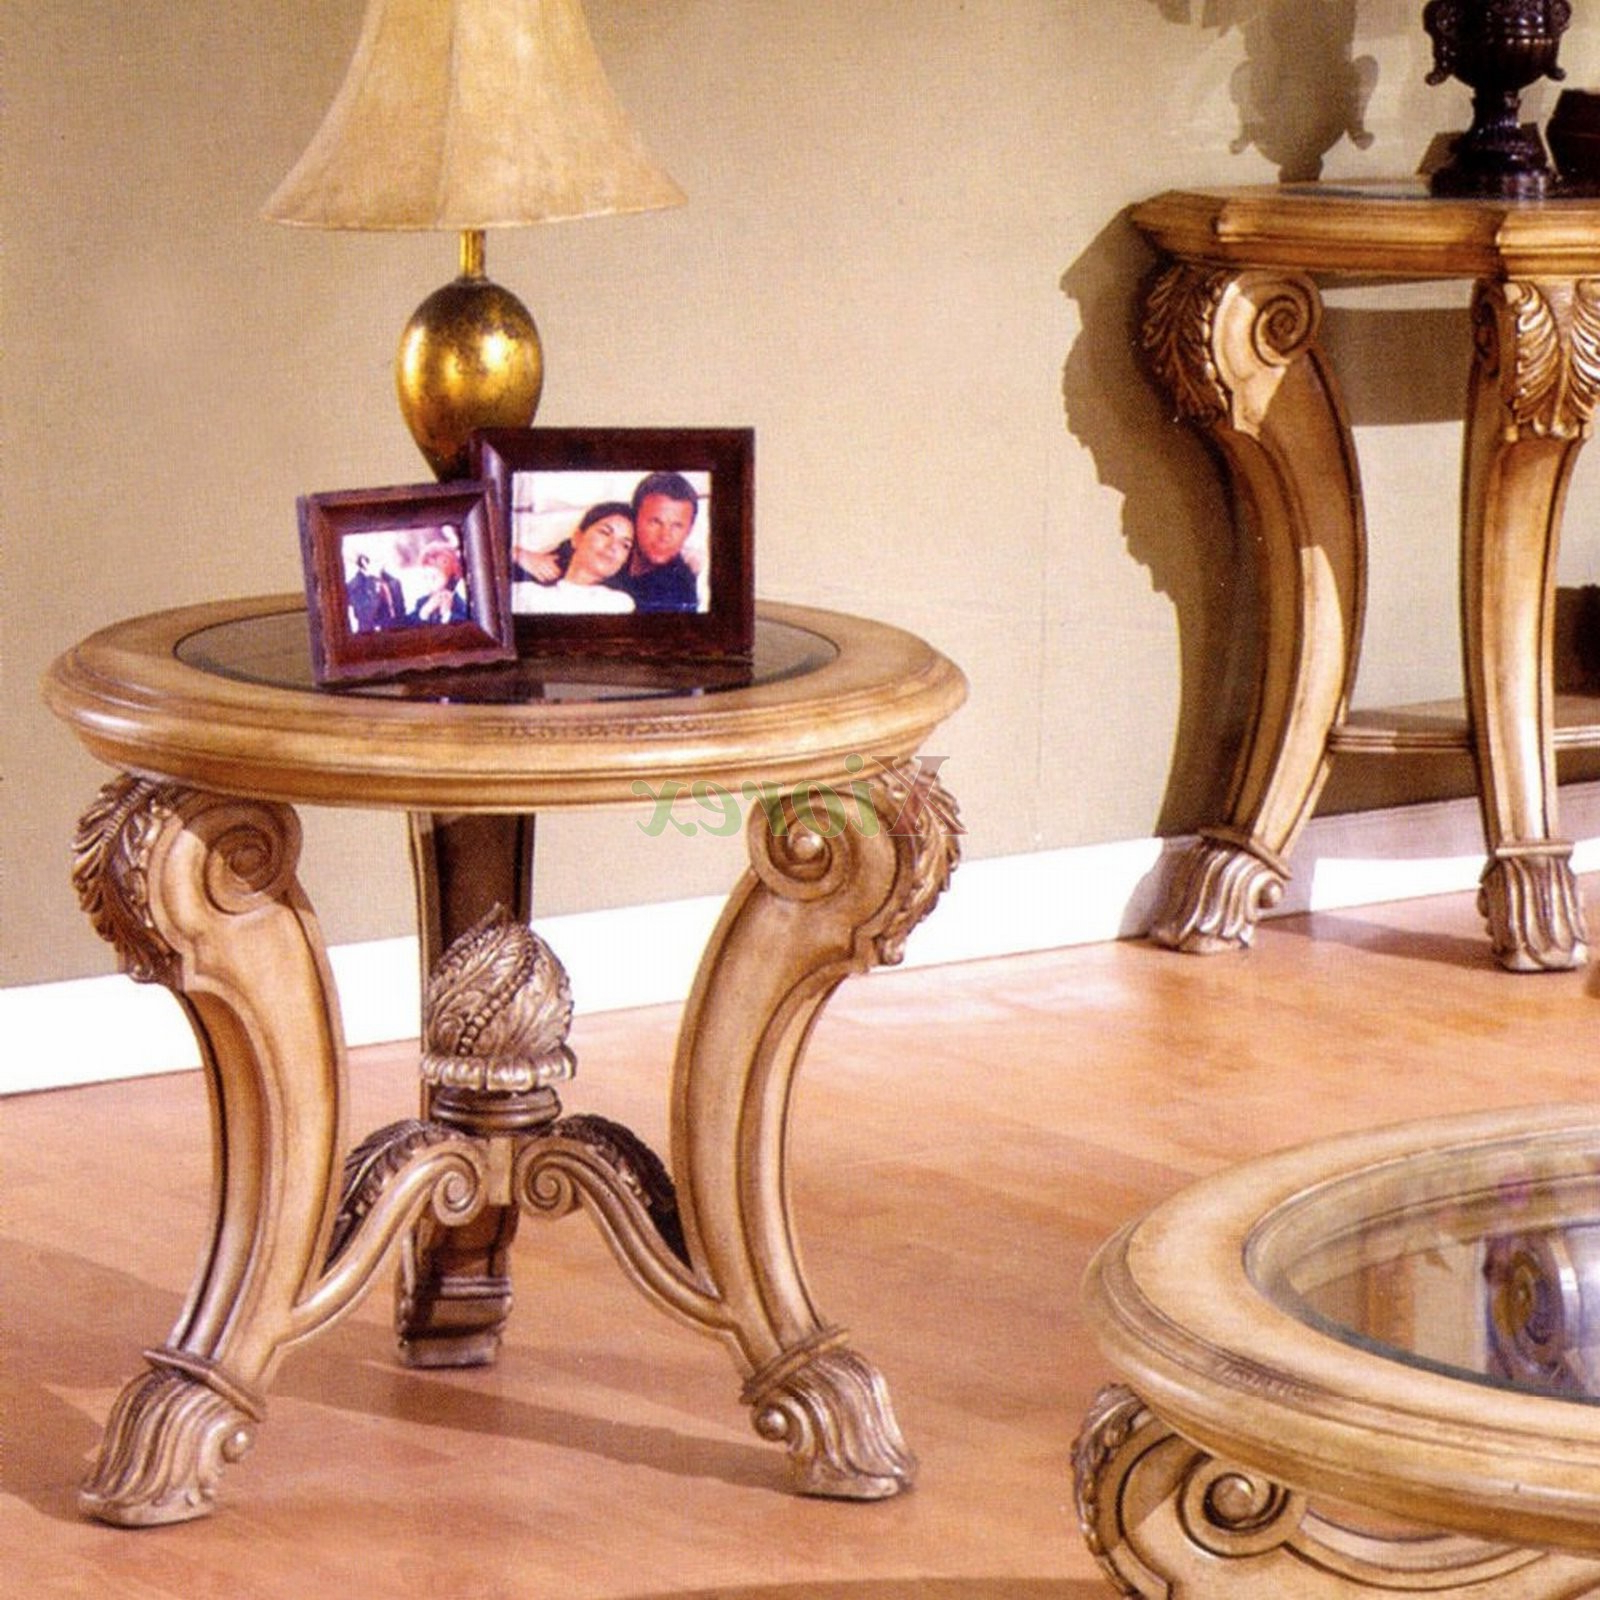 Carved Wooden Round Coffee Table Ideas Corvi Glass Top End Tables Throughout Trendy Round Carved Wood Coffee Tables (View 13 of 20)